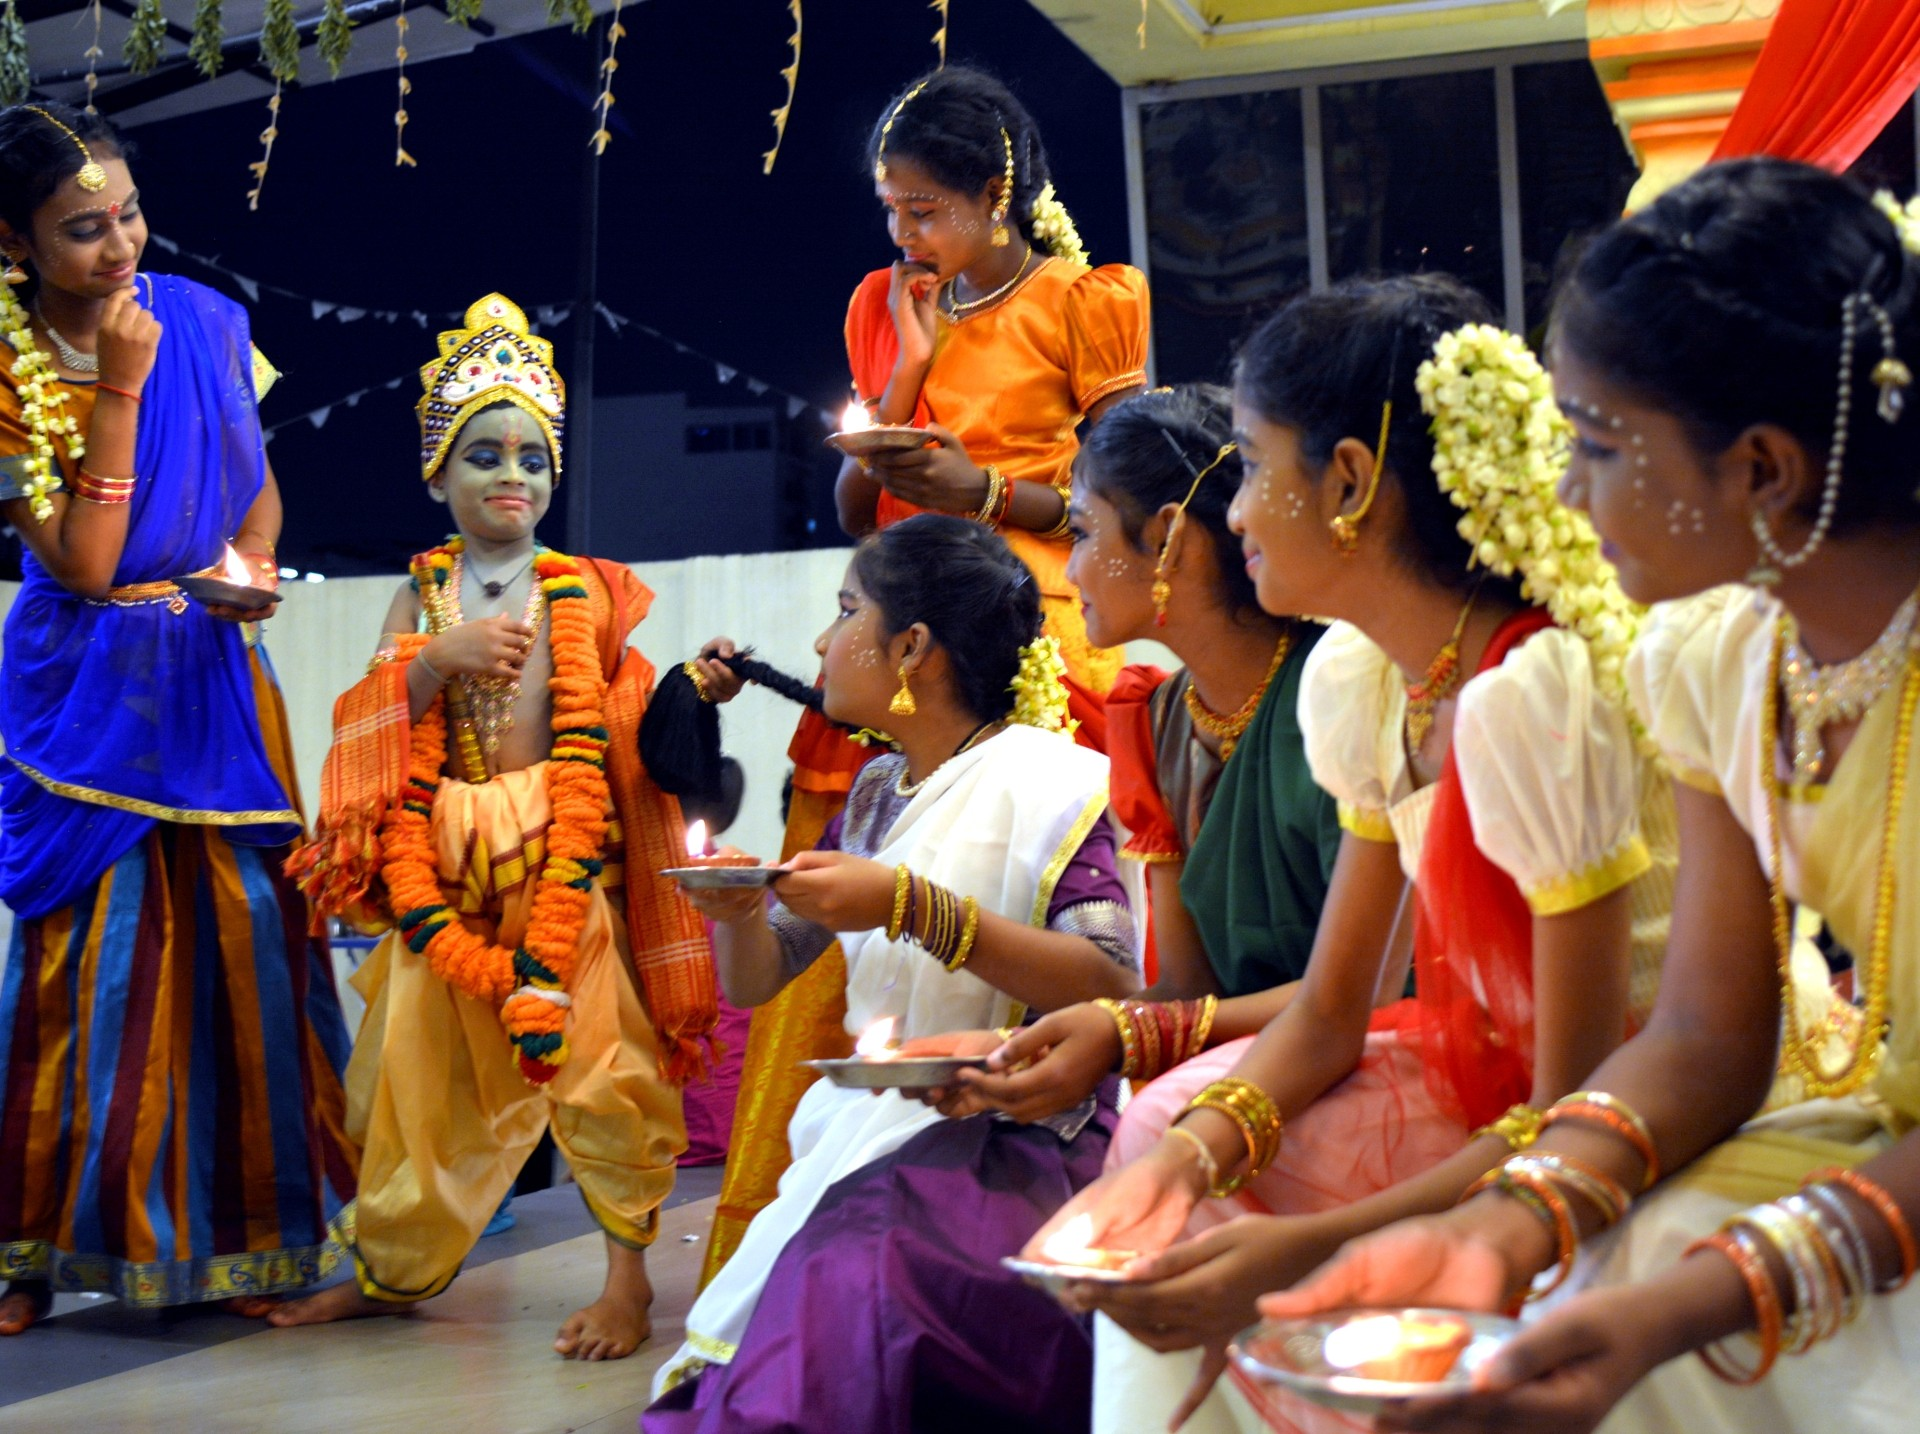 The festival of lights is a religious observance commemorated by religious class students at the Devi Sri Maha Karumariamman Temple in Kuala Lumpur. P NATHAN/The Star